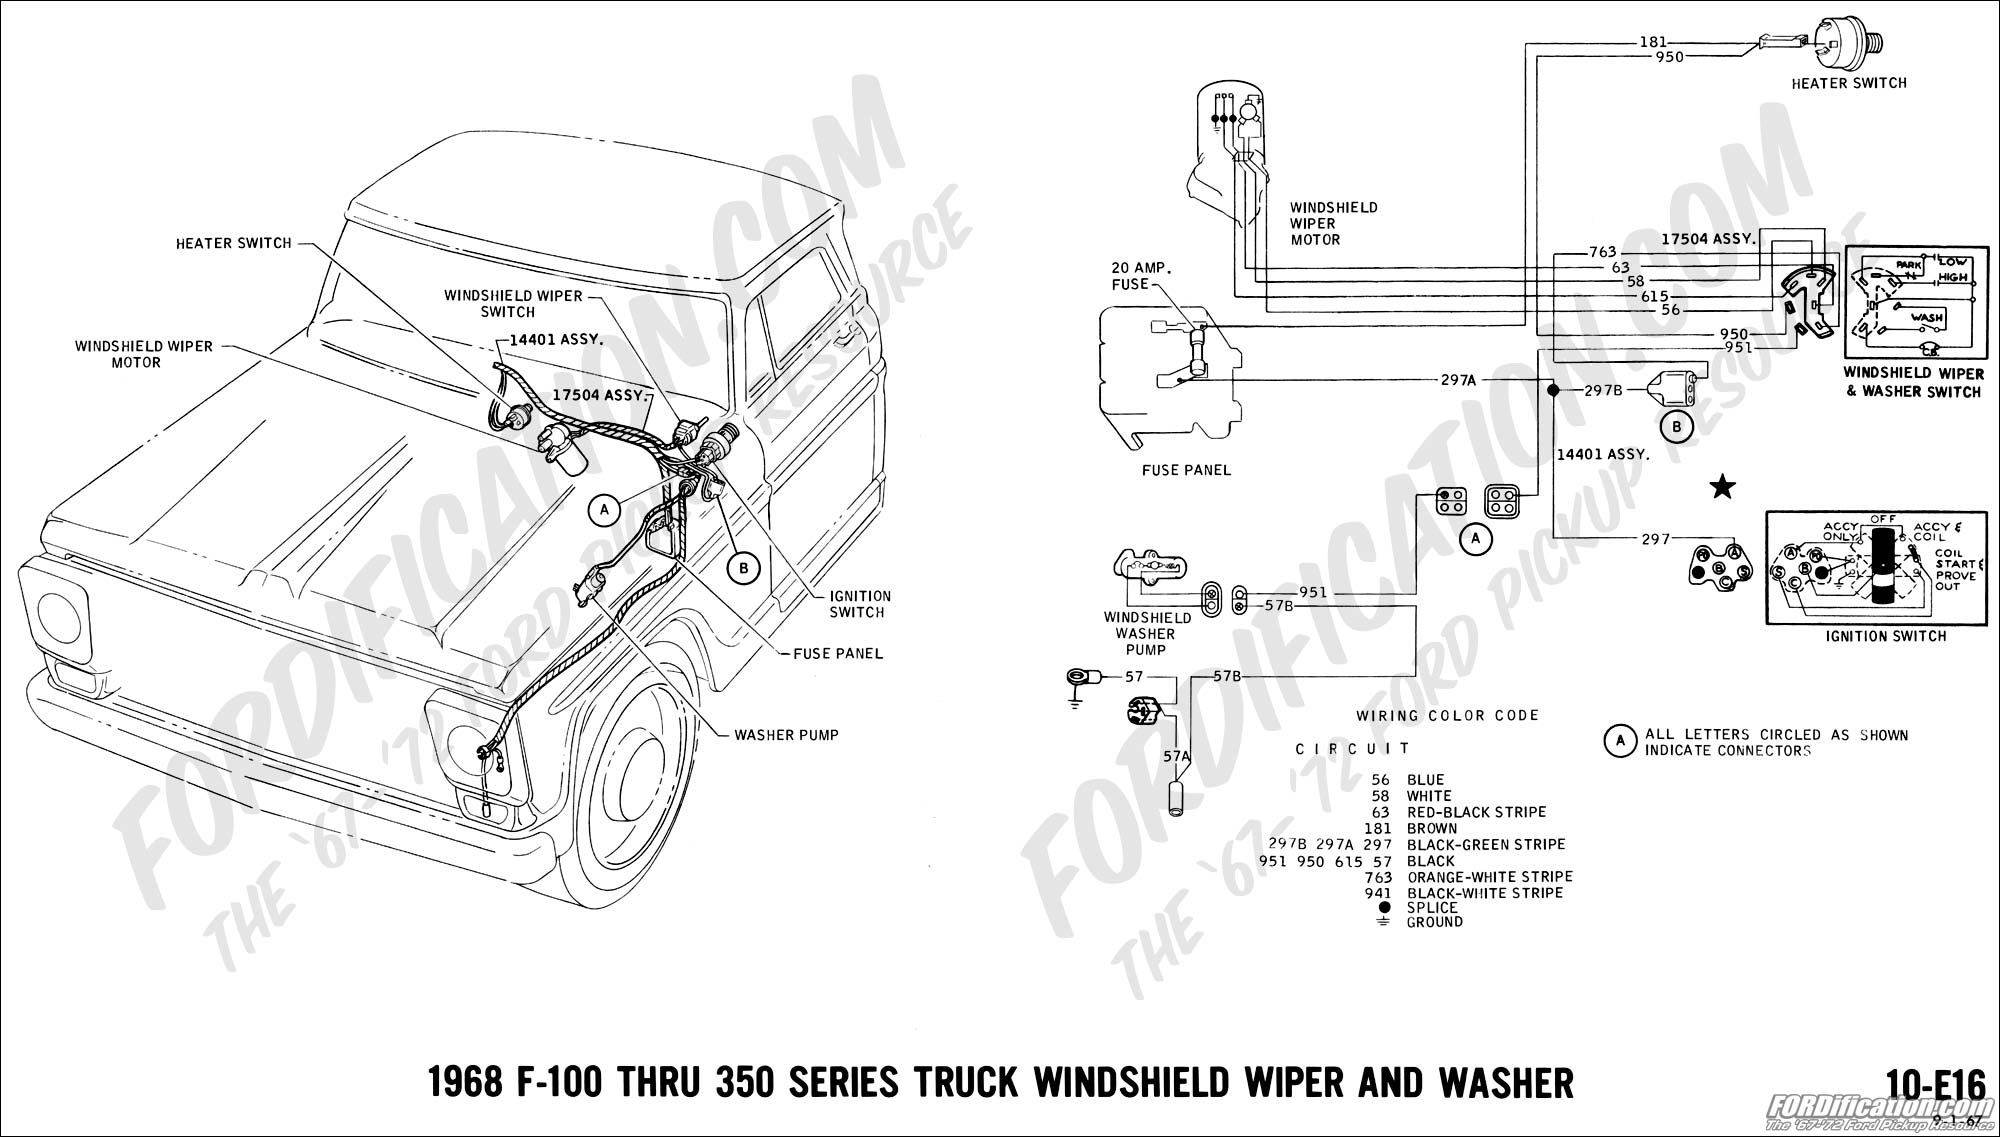 68 18 1967 chevy impala wiring diagram 1974 chevy c10 wiring diagram Universal Wiper Motor Wiring Diagram at bayanpartner.co